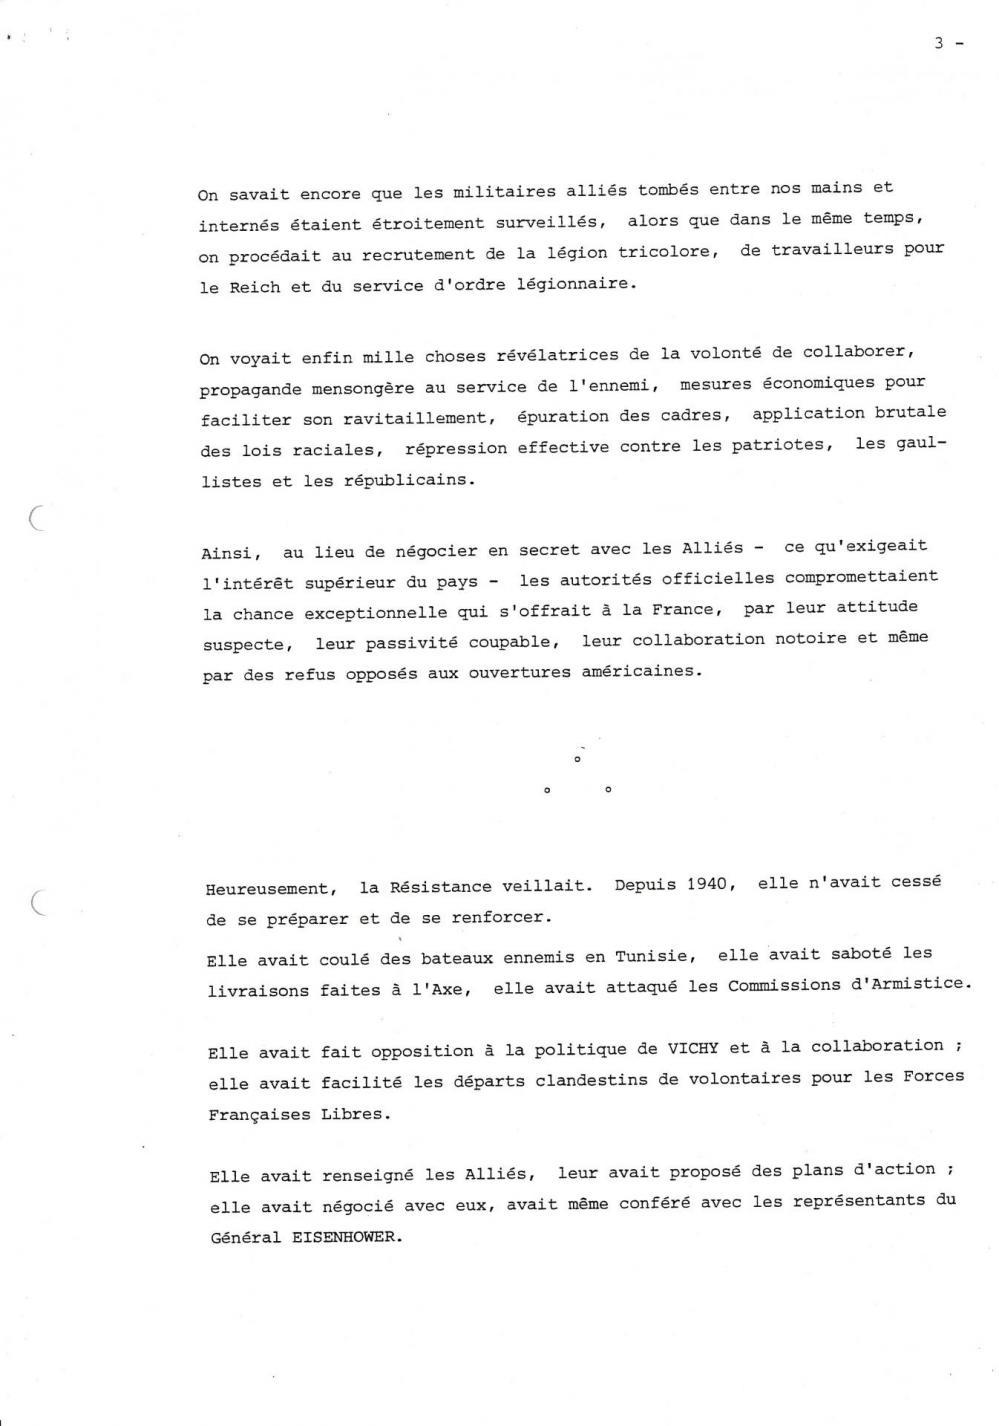 General jousse page 3